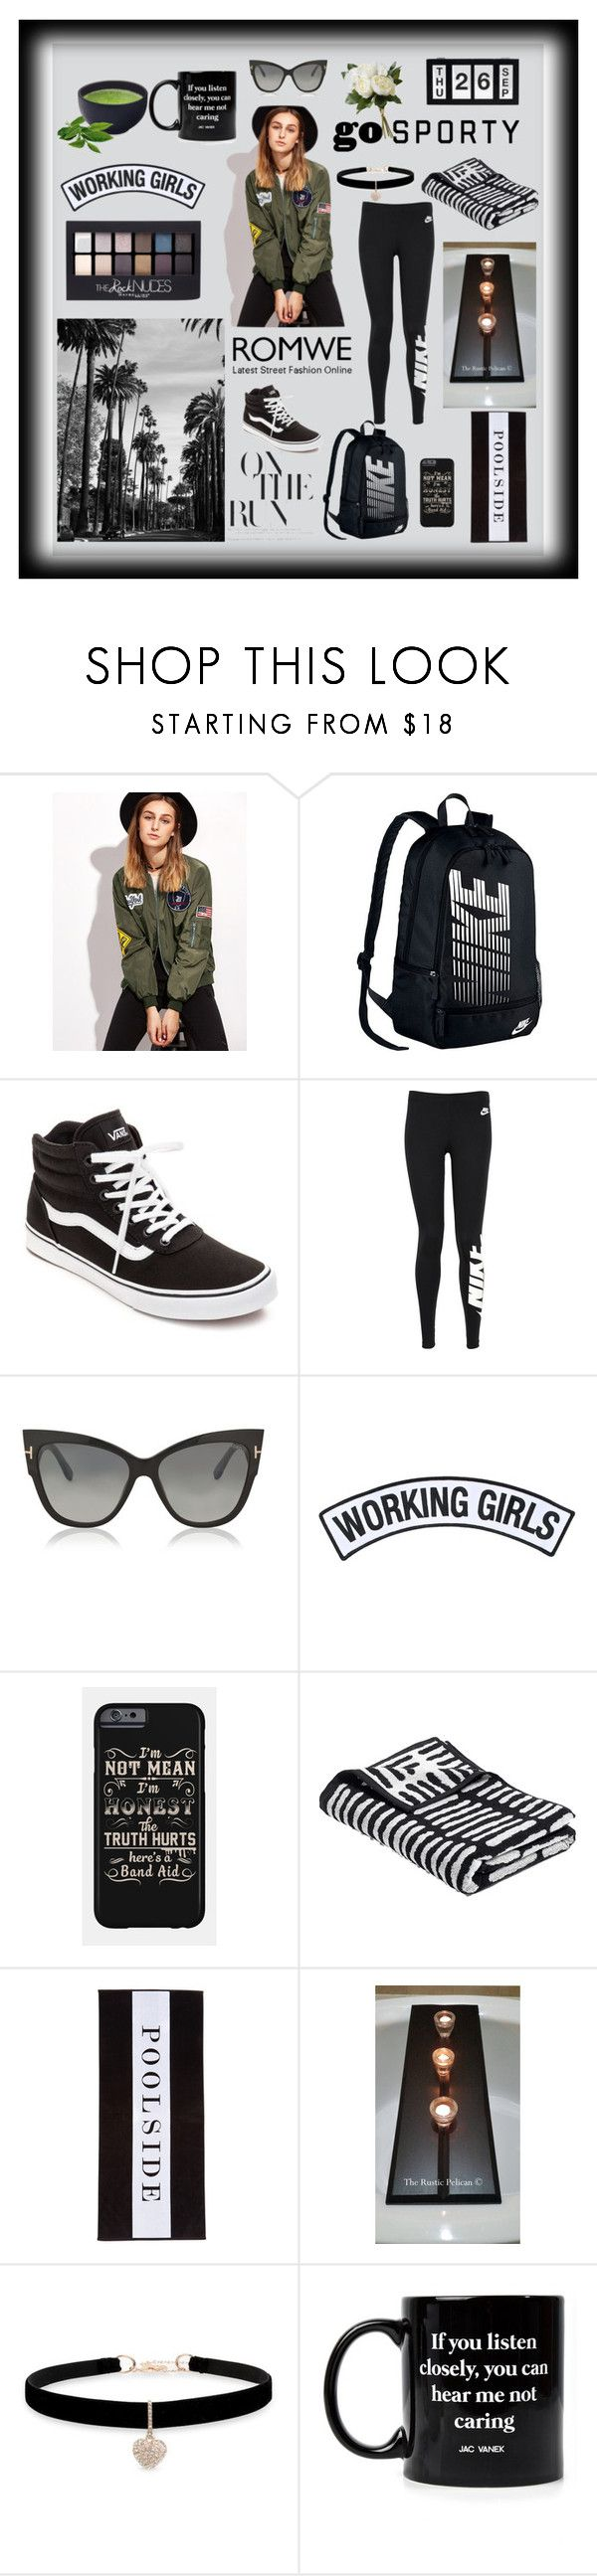 """""""With ROMWE"""" by explorer-14673103603 on Polyvore featuring NIKE, Vans, Maybelline, Tom Ford, Working Girls, Chance, Betsey Johnson, Jac Vanek and National Tree Company"""